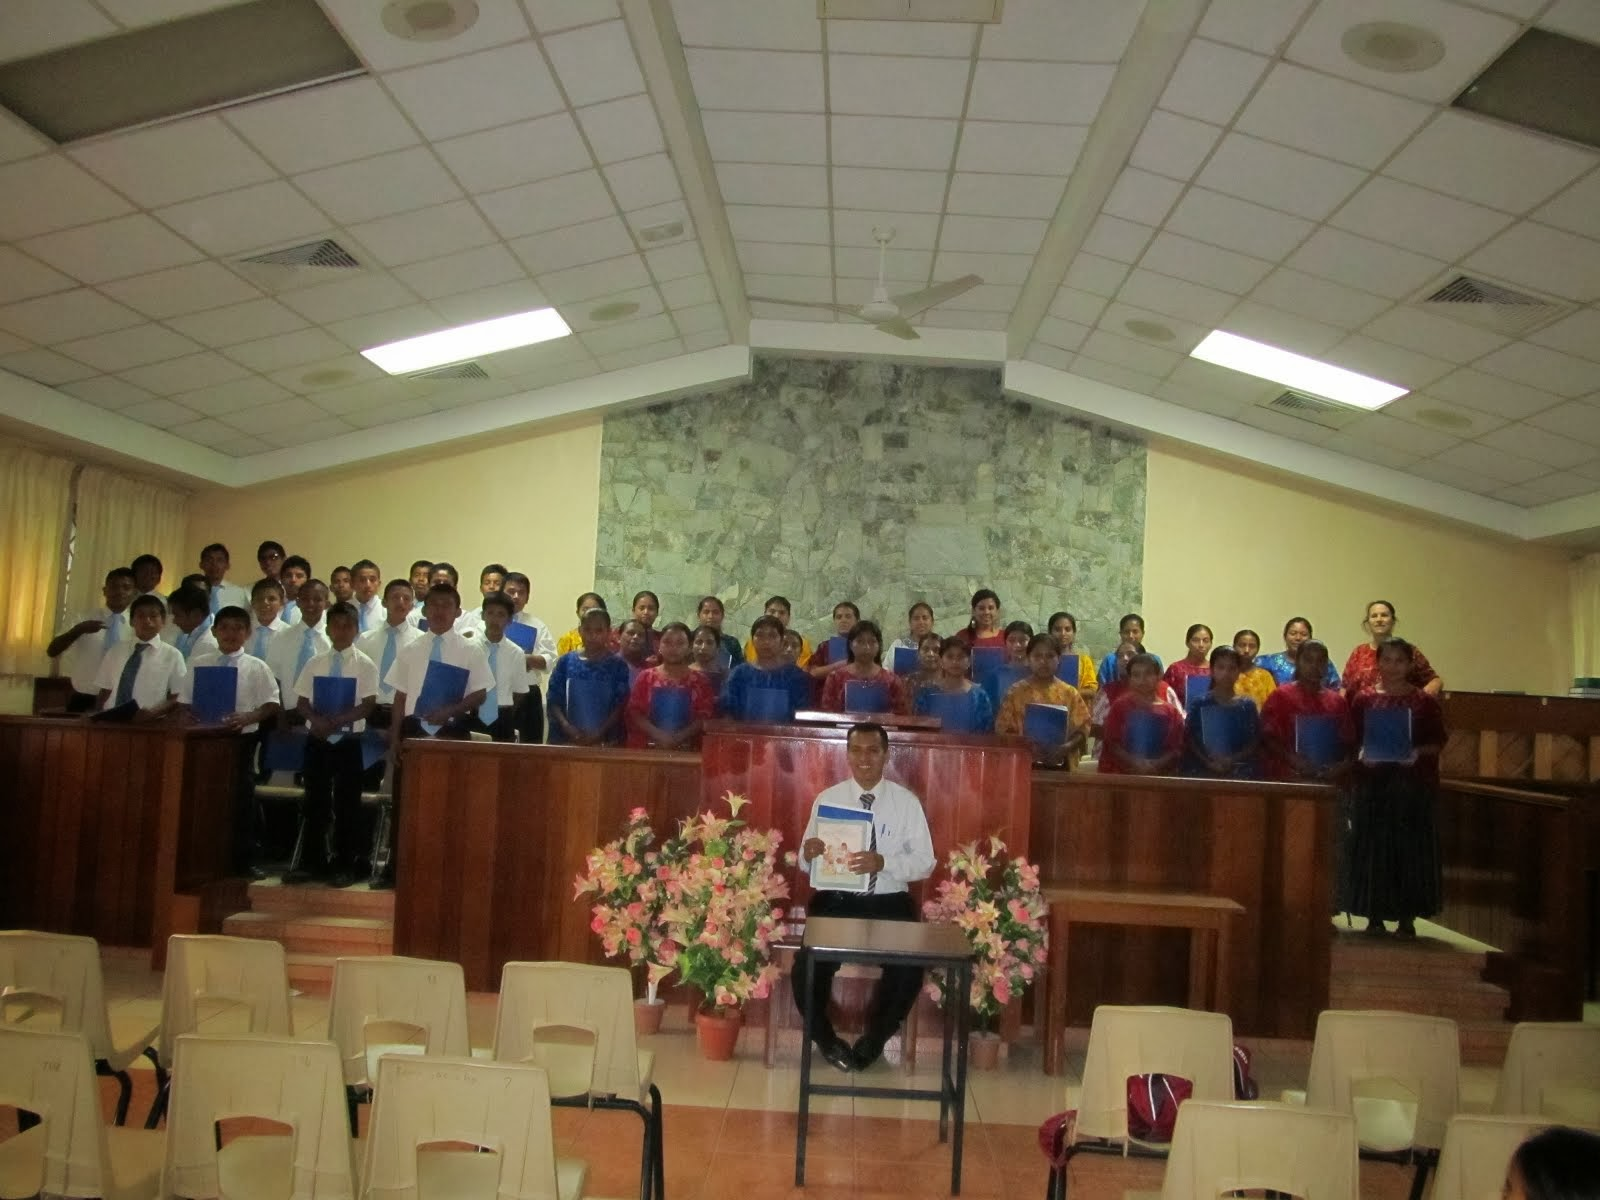 The Senahu Choir